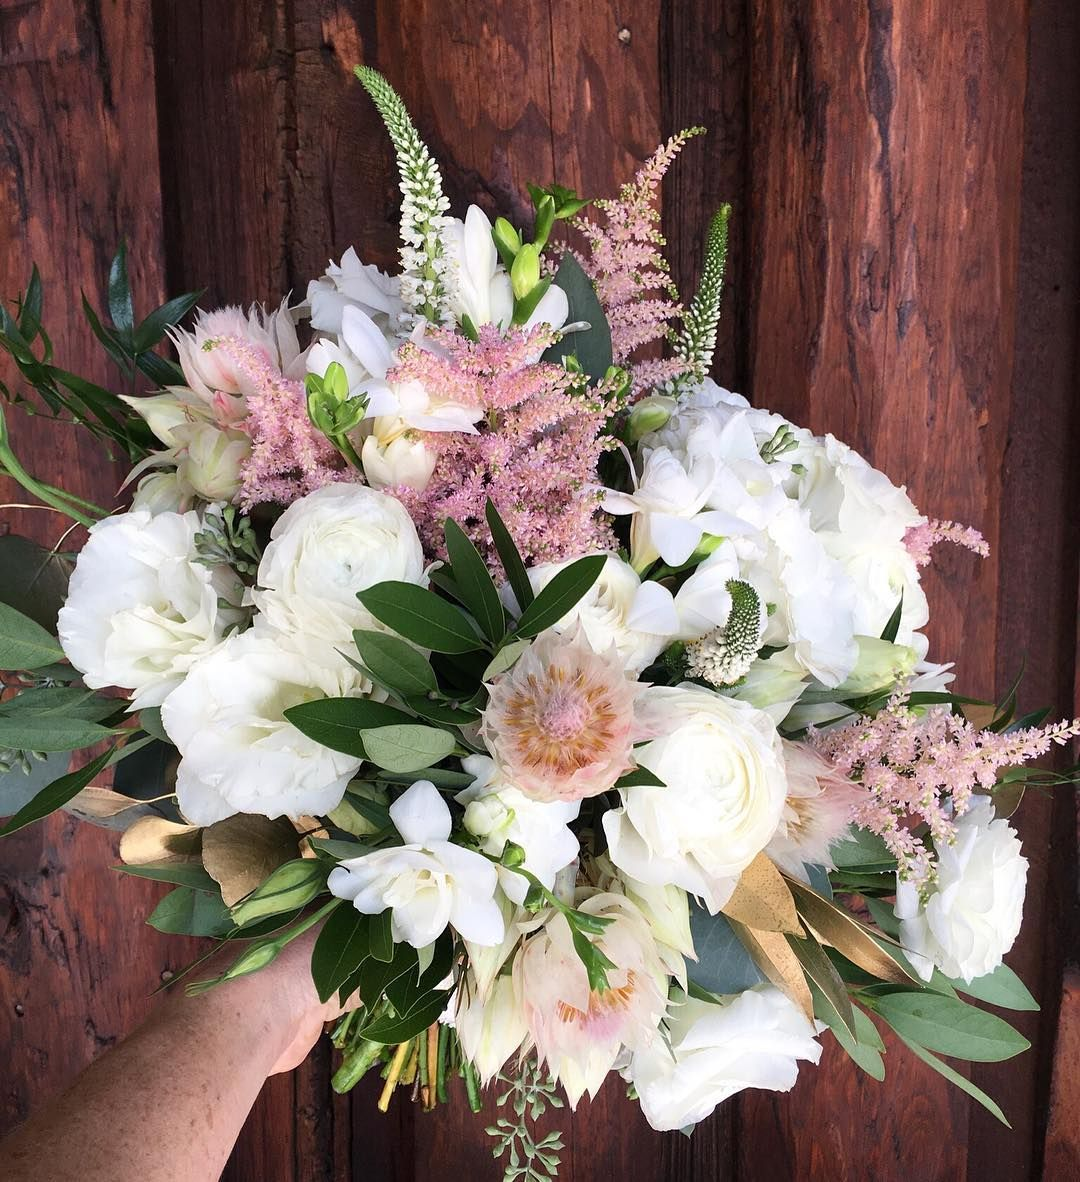 Bouquet by Plum Sage Flowers featuring blushing bride ...